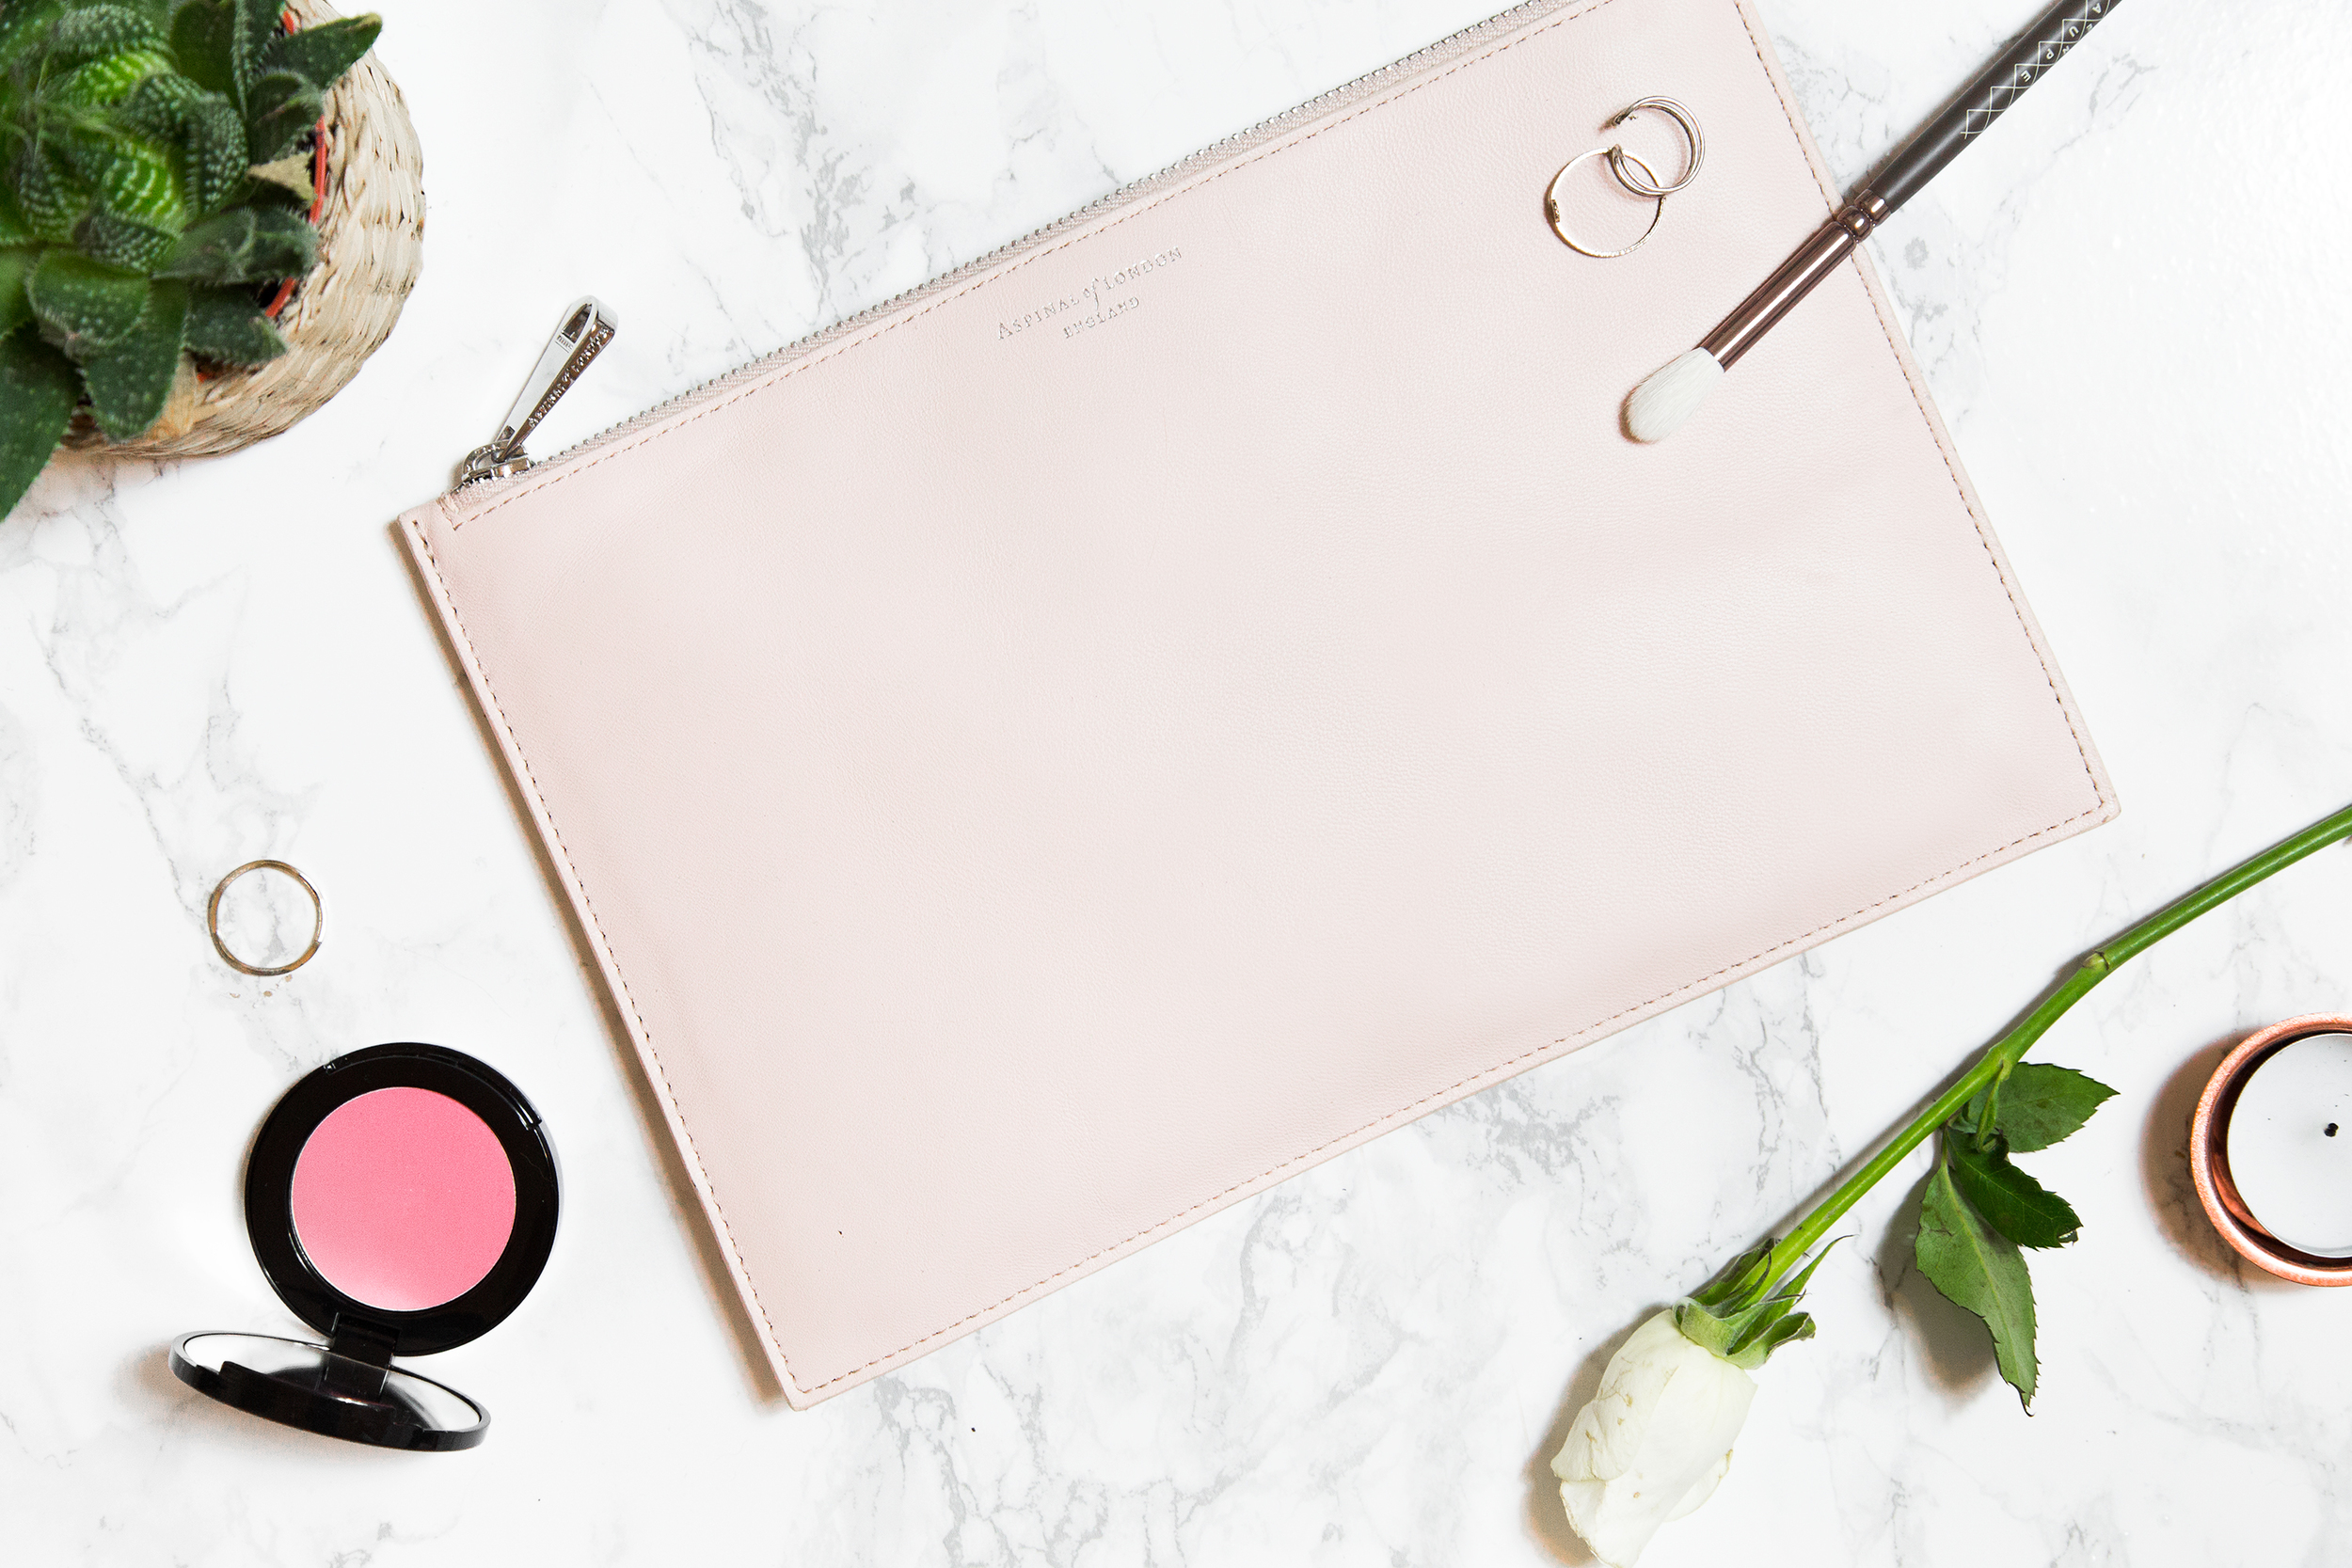 Where to get cheap designer bags